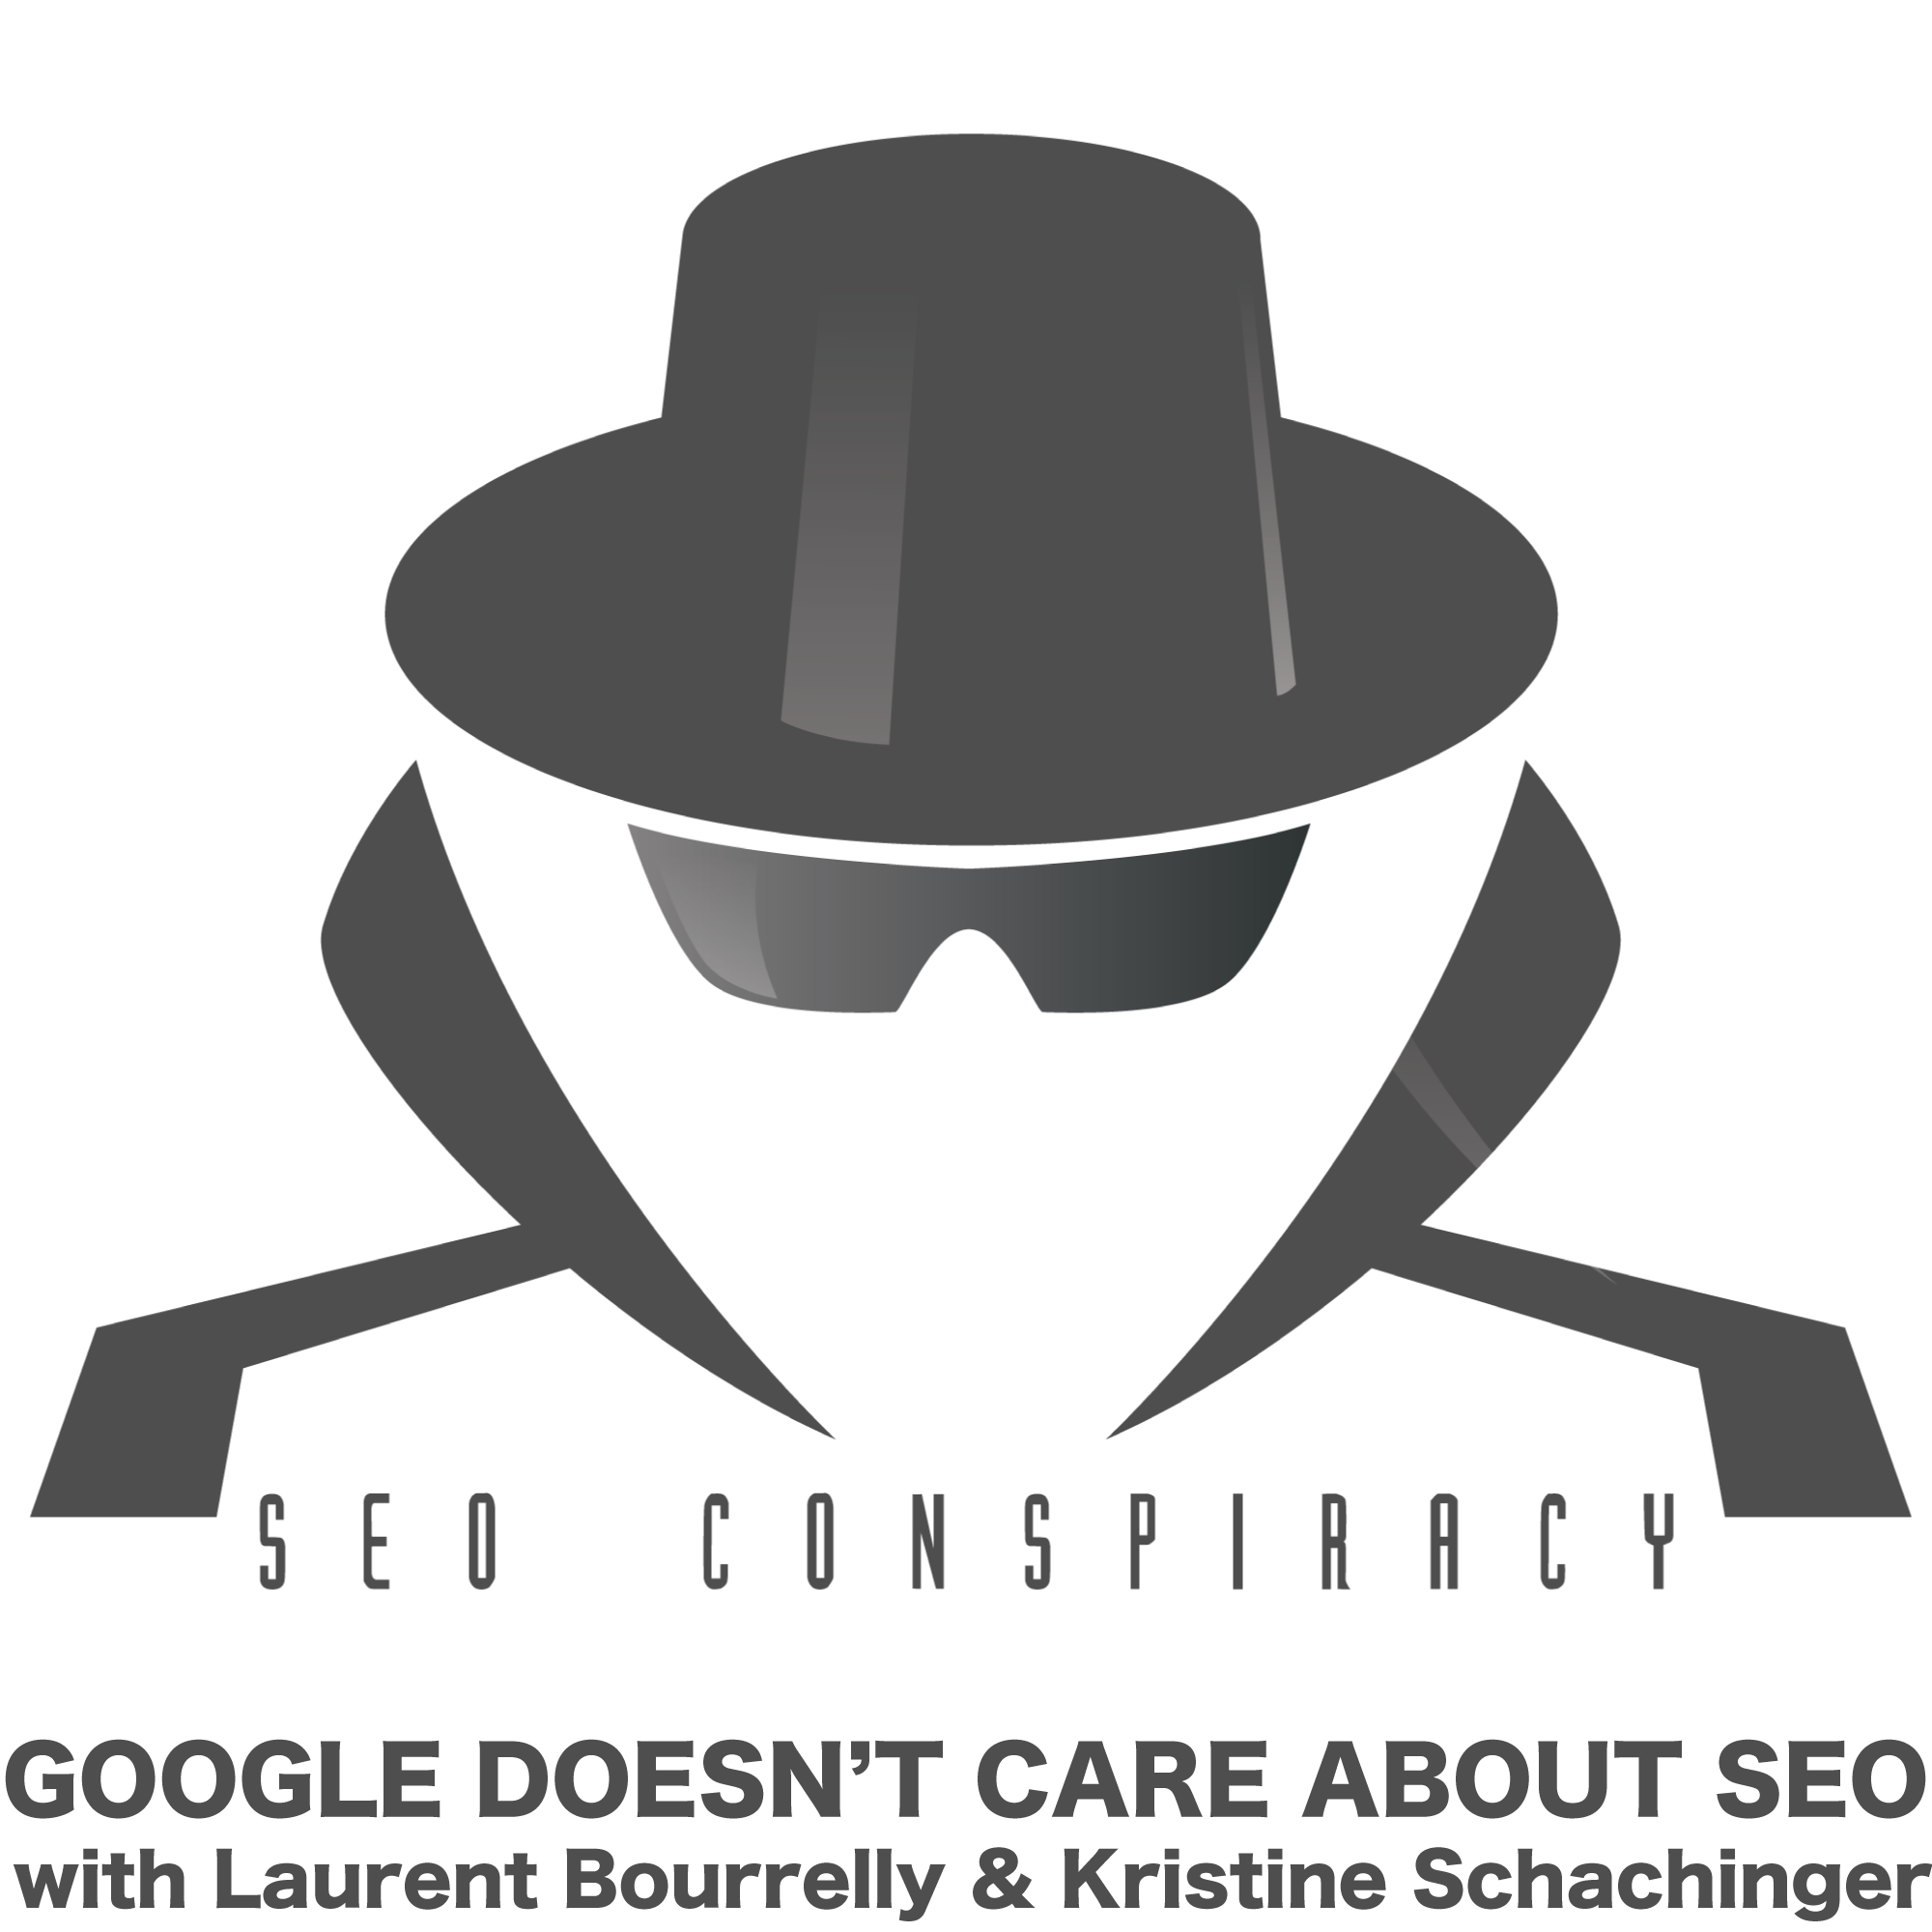 Google Abuse of Power, Ethics Issues and Manipulation of the SEO Industry